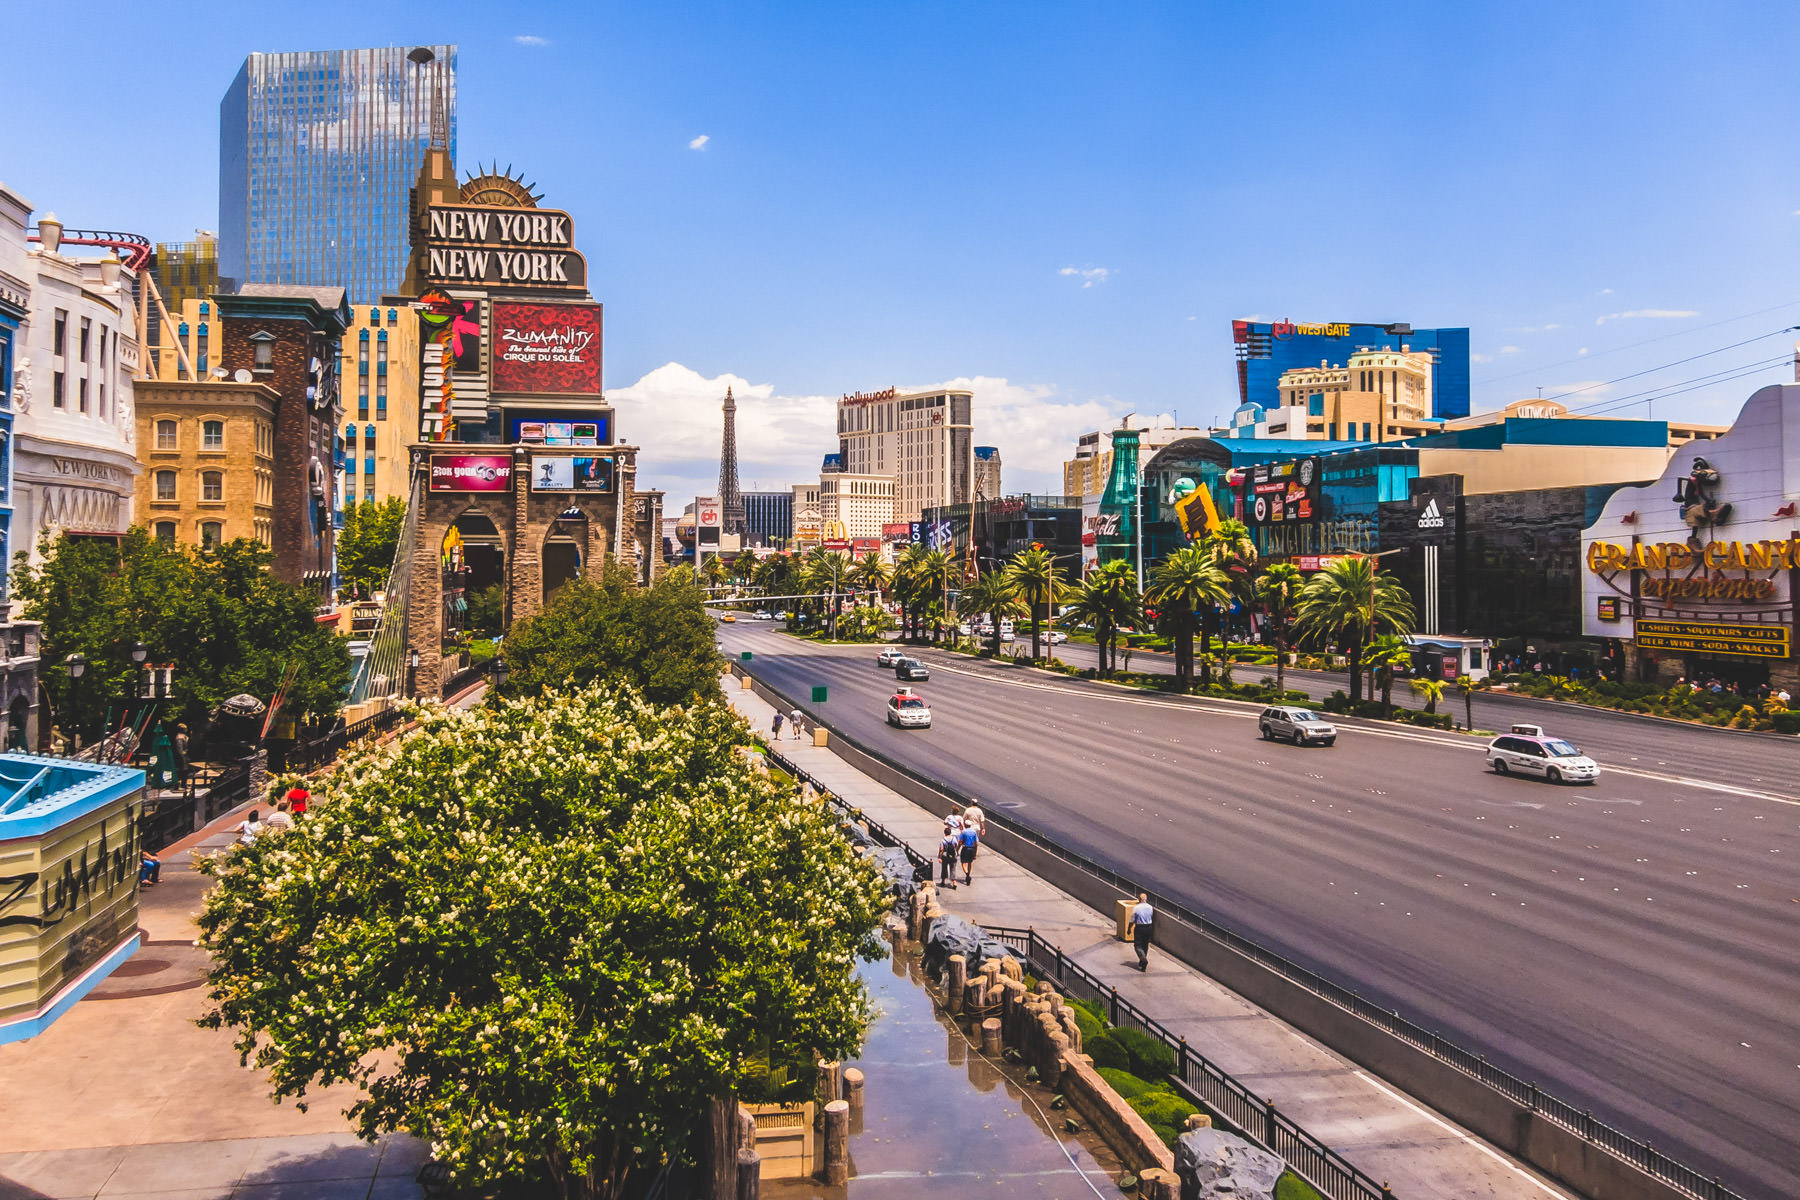 A view of the Las Vegas Strip looking north from a pedestrian bridge at New York New York.